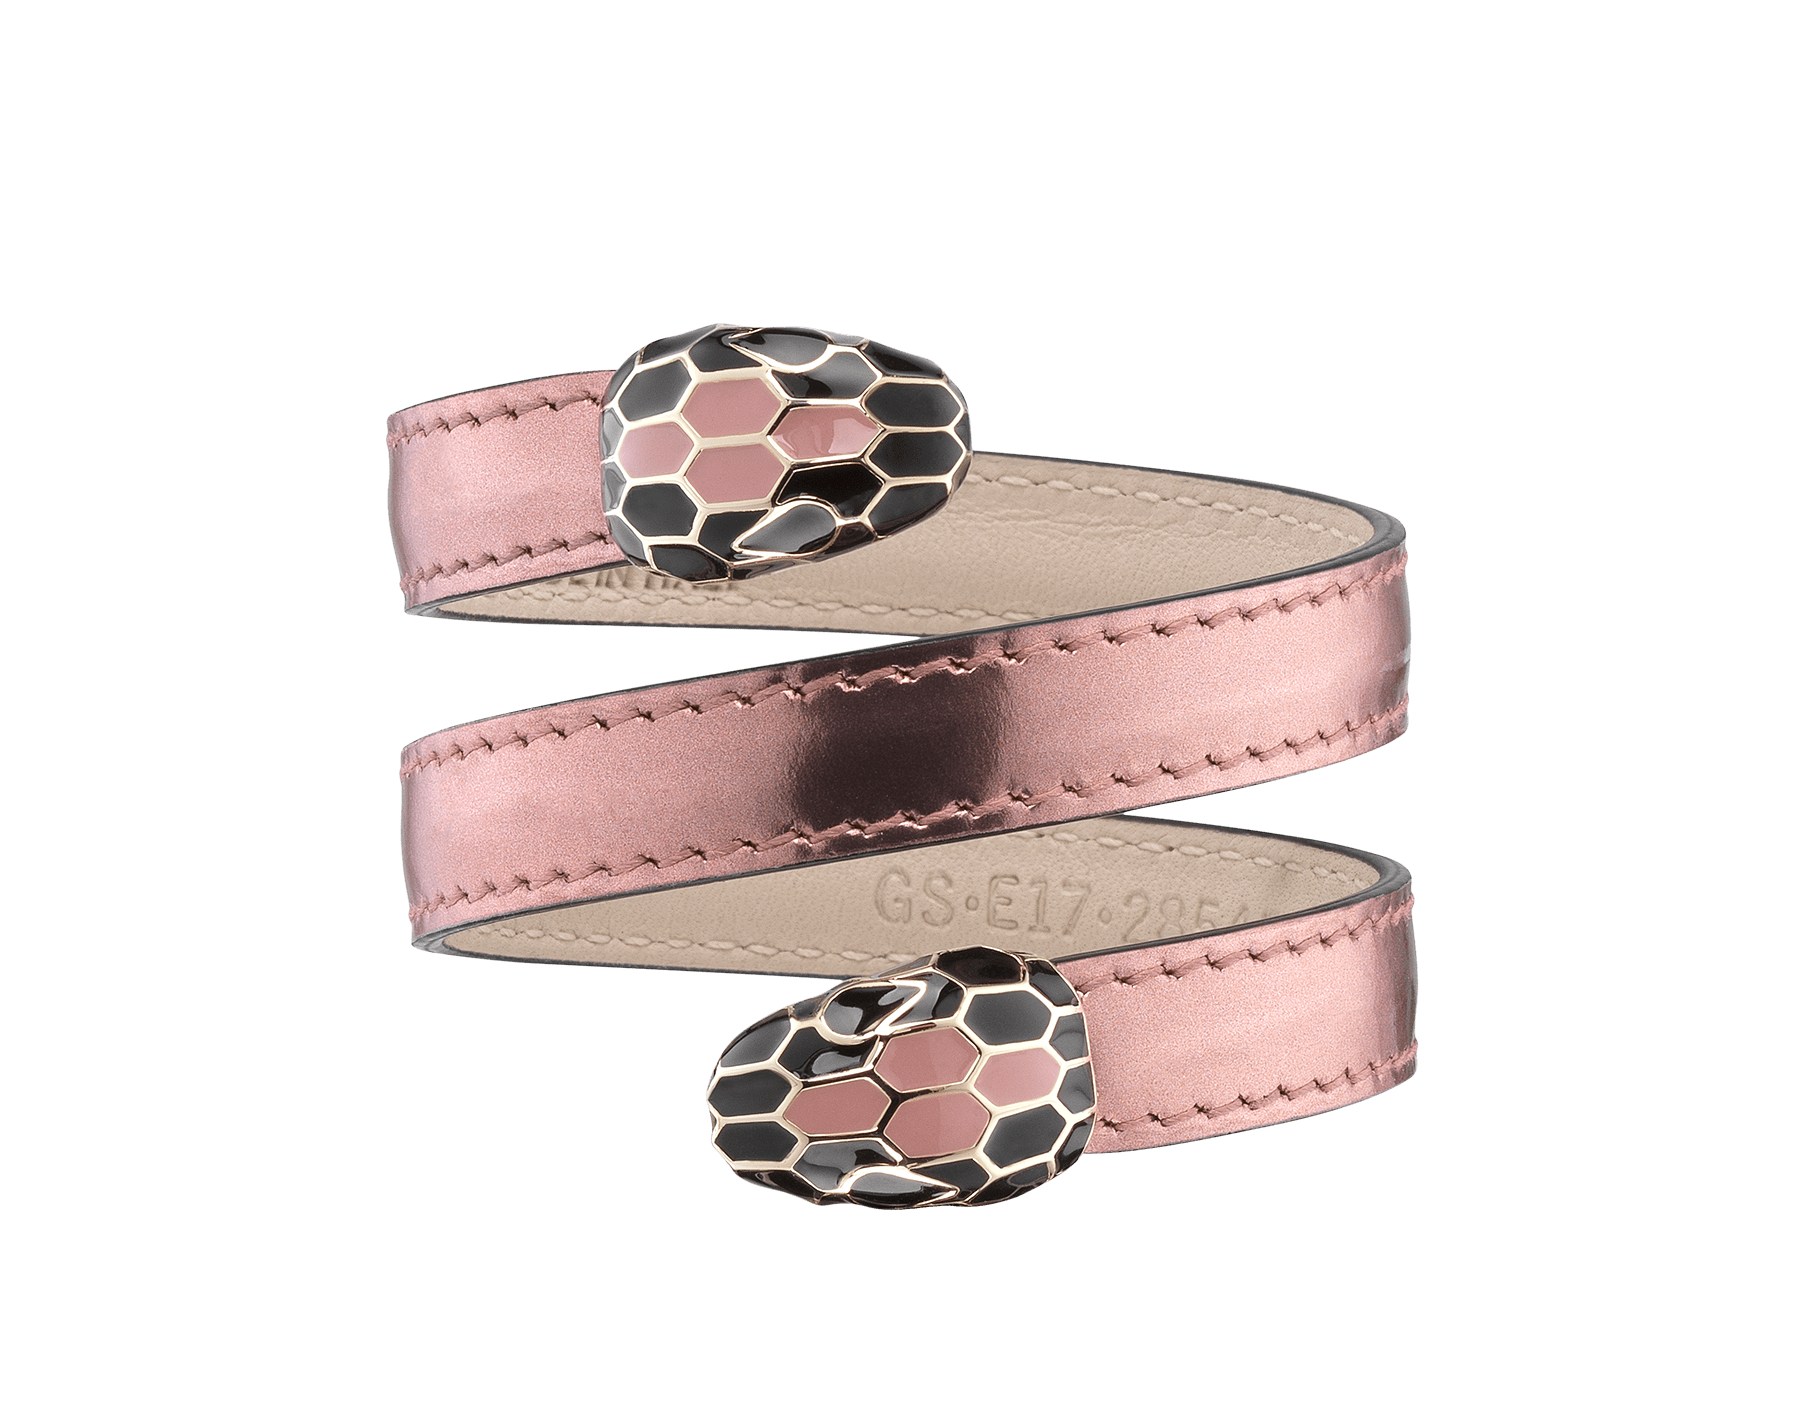 Multi-coiled rigid Cleopatra bracelet in rose quartz brushed metallic calf leather, with brass light gold plated hardware. Double tempting Serpenti head finished in rose quartz and black enamel, with eyes in black enamel. 285453 image 1